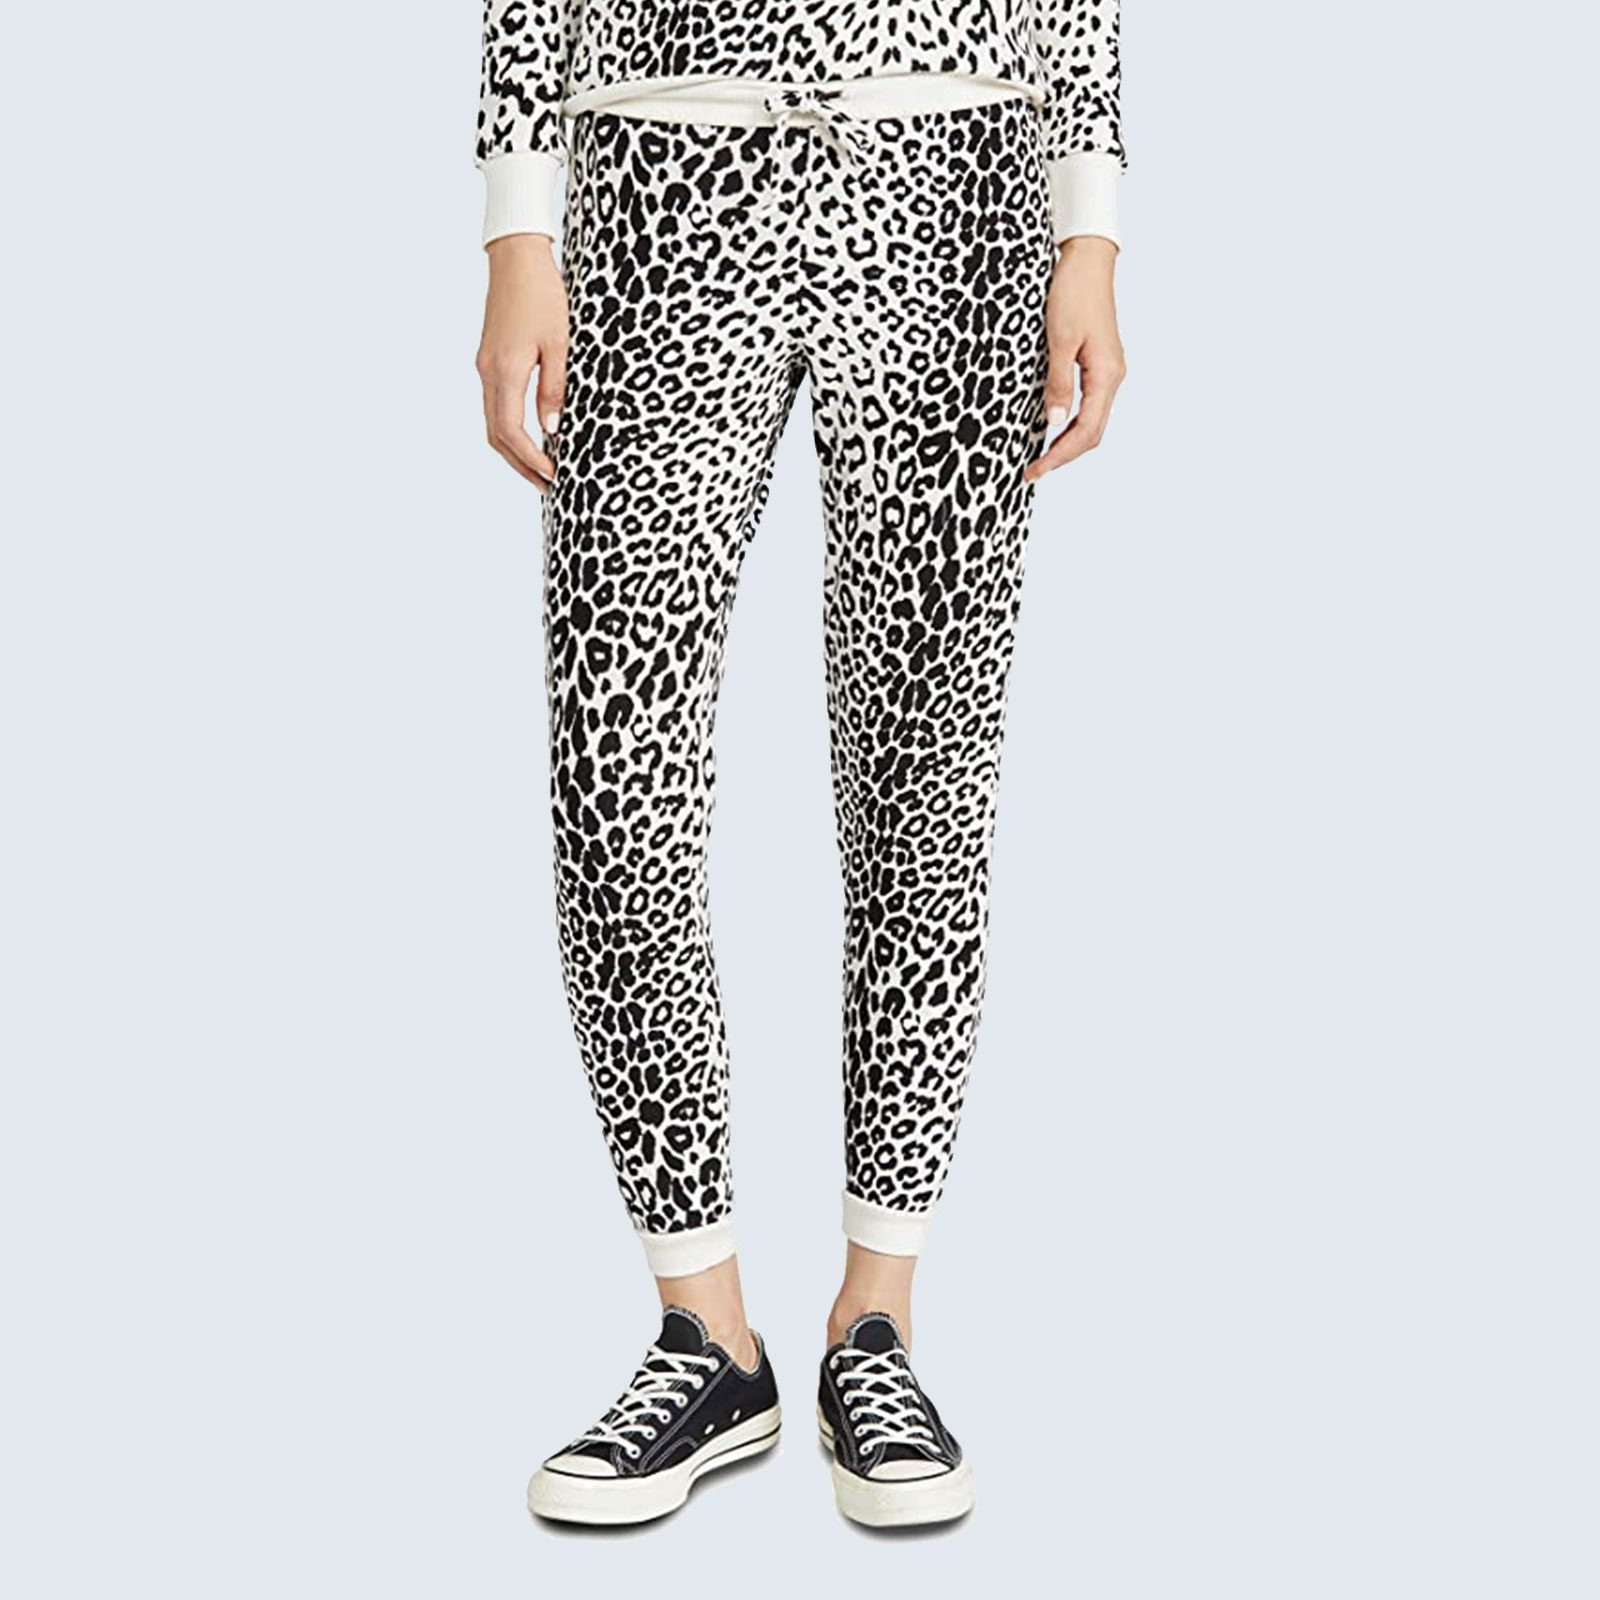 For the loungewear lover: Chaser Cozy Knit Cuffed Drawstring Joggers